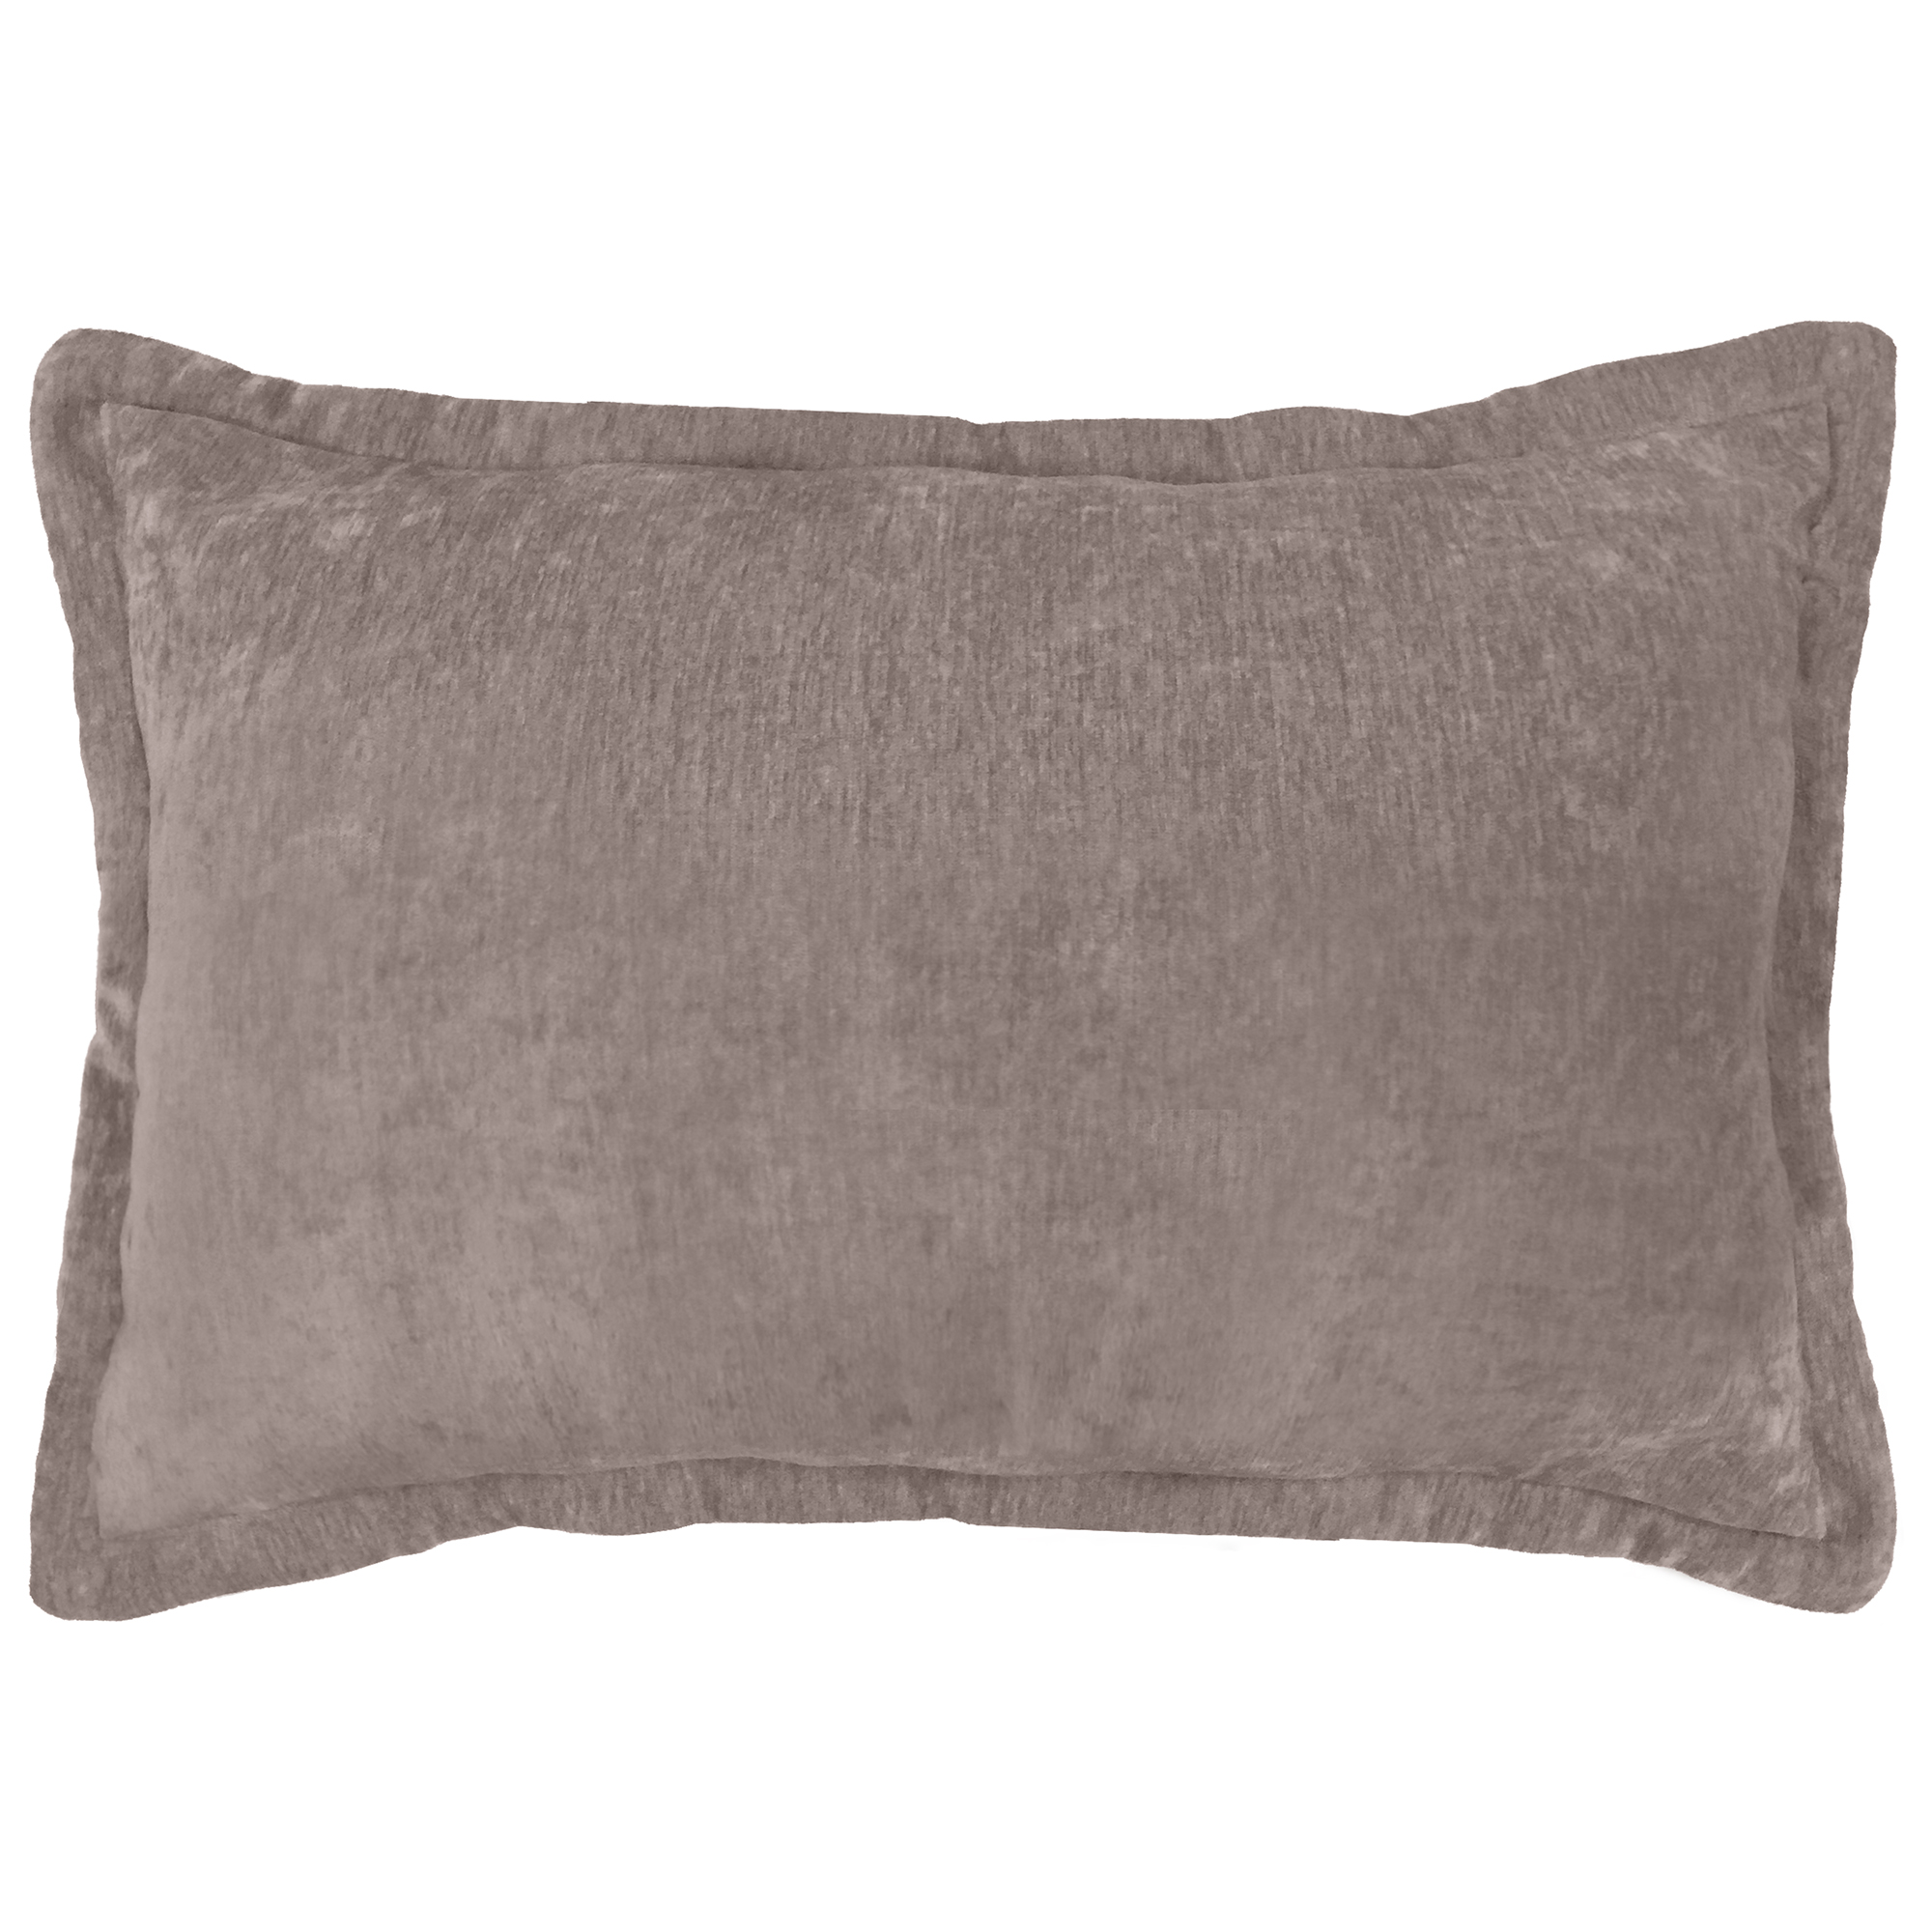 "Better Homes and Gardens, Taupe Reversible Chenille Oblong Pillow, 14"" x 20"""